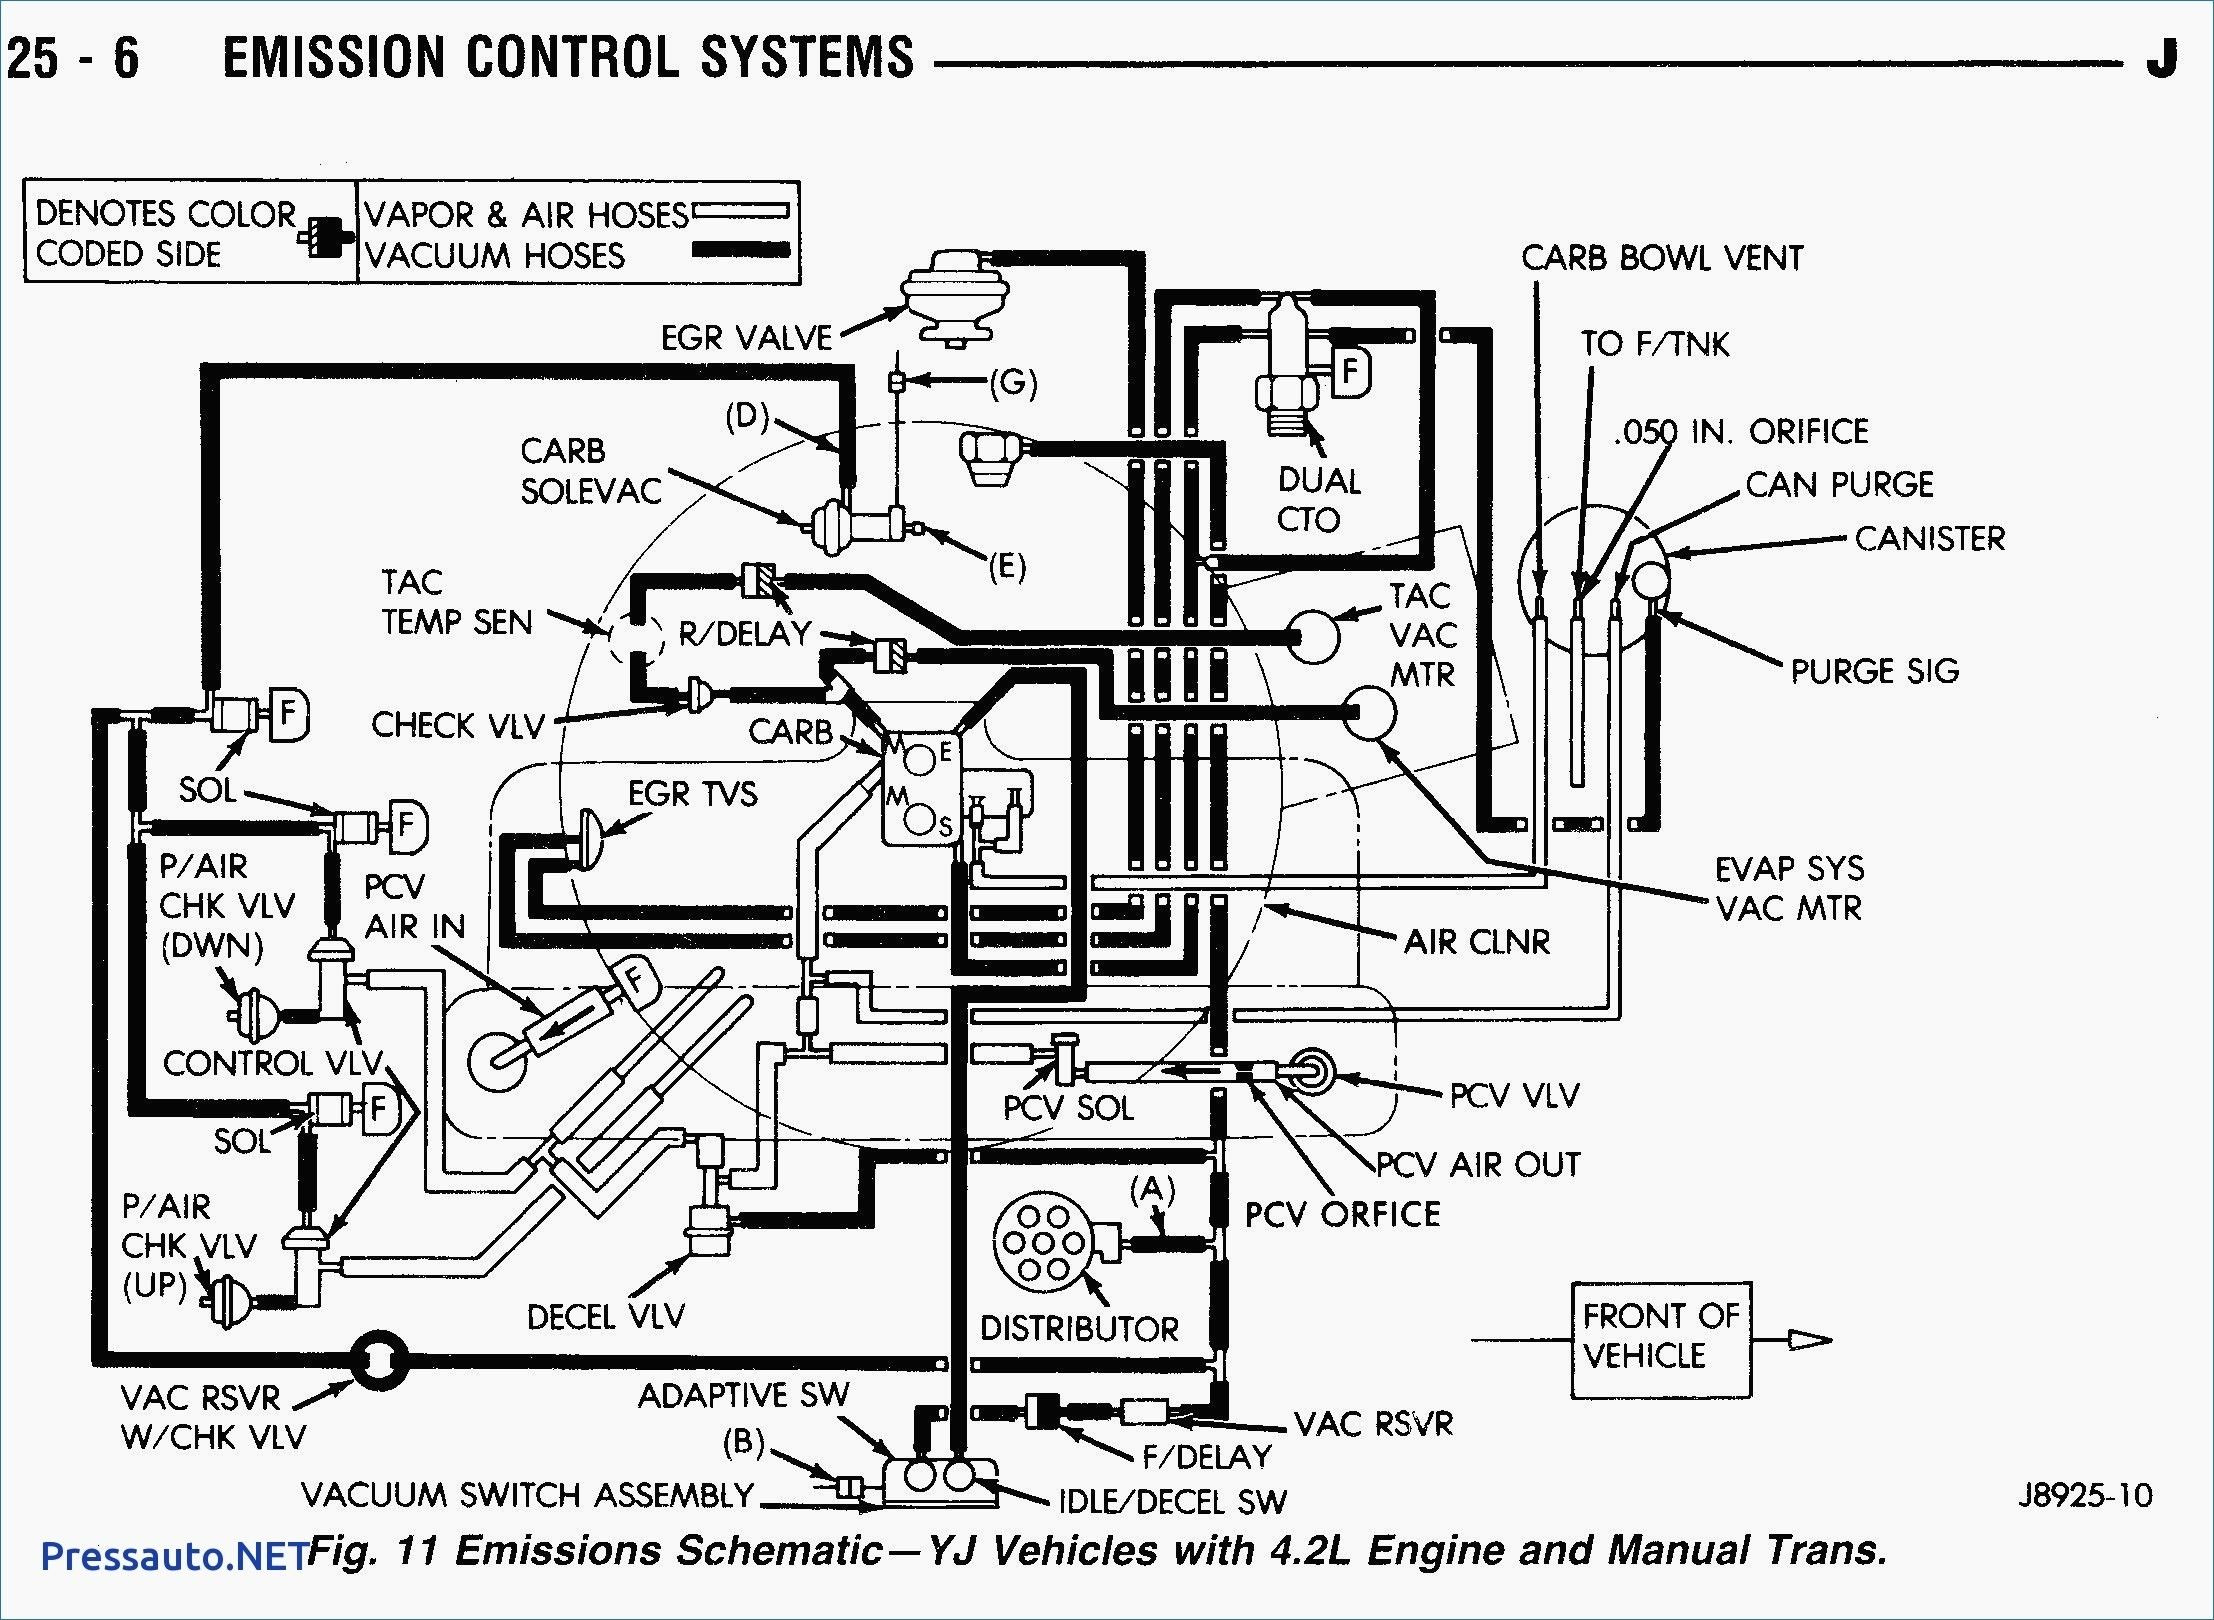 [SCHEMATICS_48EU]  Engine Wiring Harness Diagram On 1990 Jeep Engine Wiring Diagram regarding 1990  Jeep Wrangler Wiring Diagram | Jeep wrangler engine, Jeep wrangler, Jeep | 1990 Jeep Cherokee Laredo Wiring Diagram |  | Pinterest